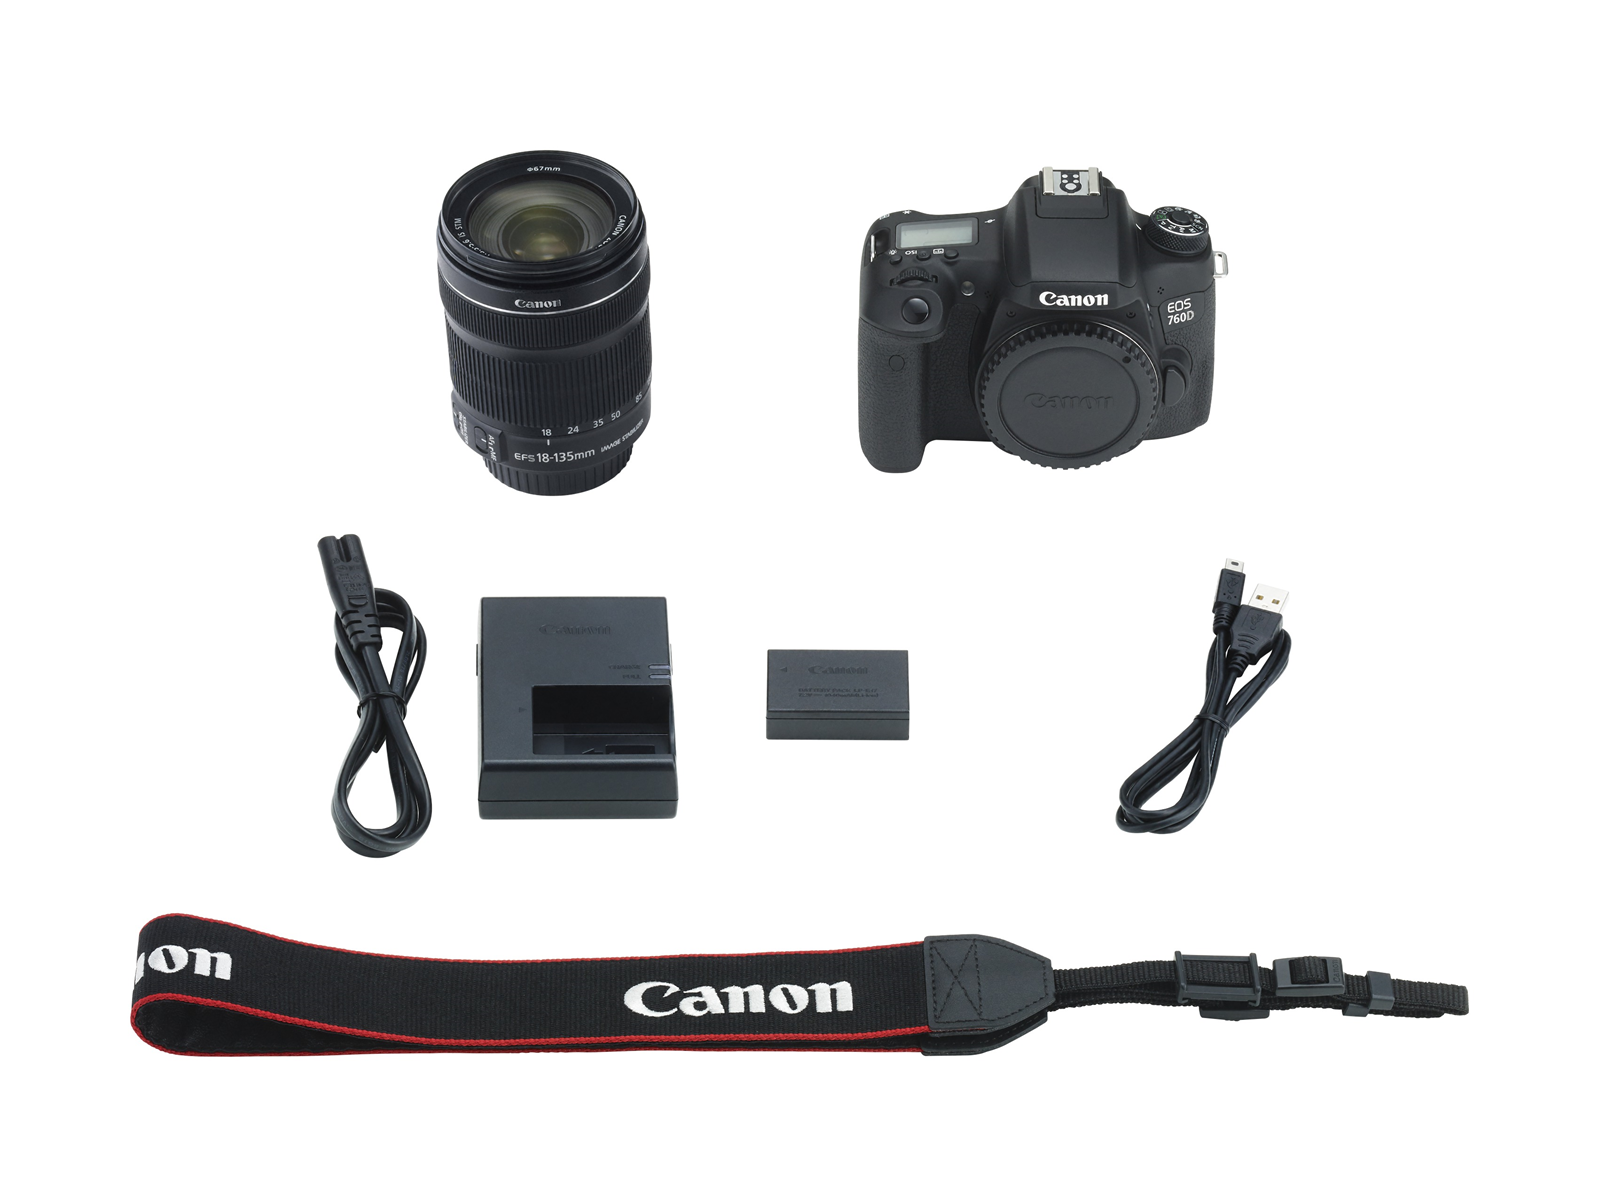 Photography Dslr Cameras Canon Eos 760d Kit 18 135 Stm 16gb Body Only Camera 760 Bo C10 Bag 3 Reviews Write A Review